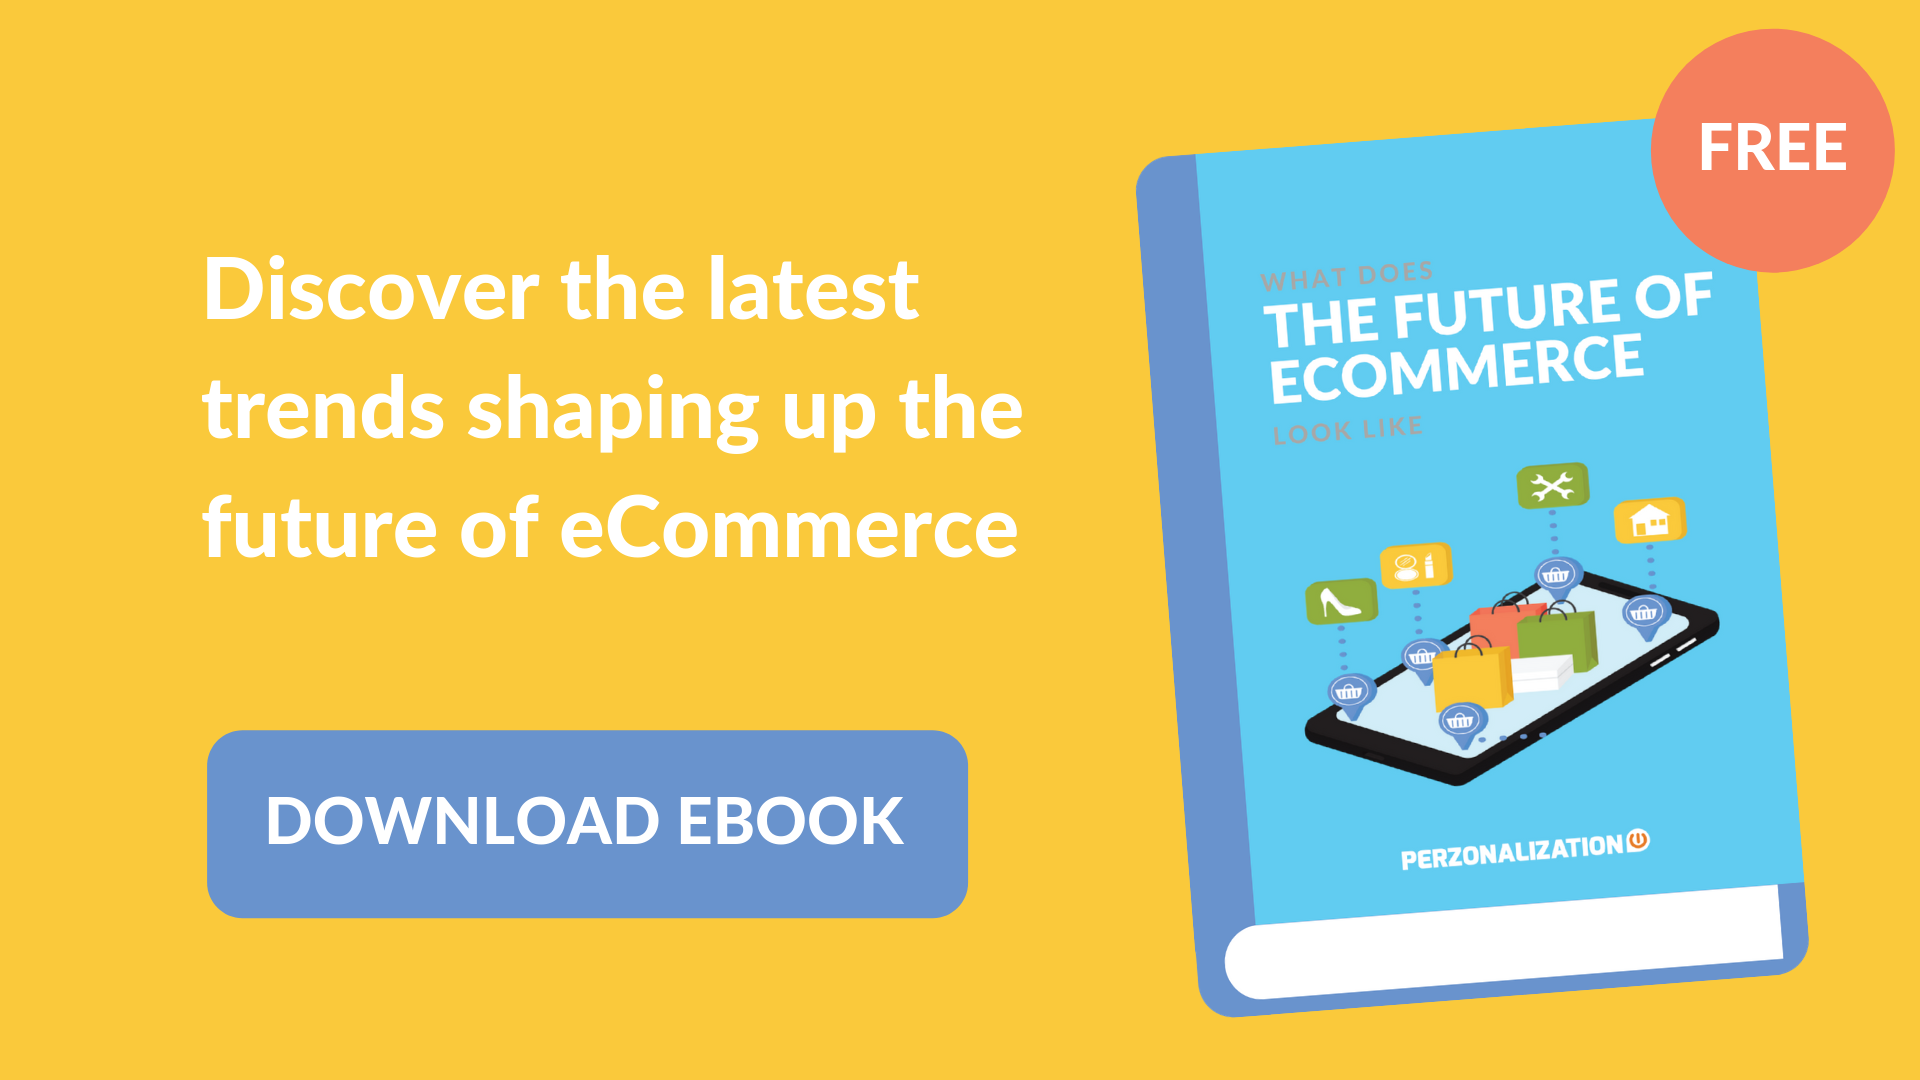 Download your free eBook: The Future of eCommerce